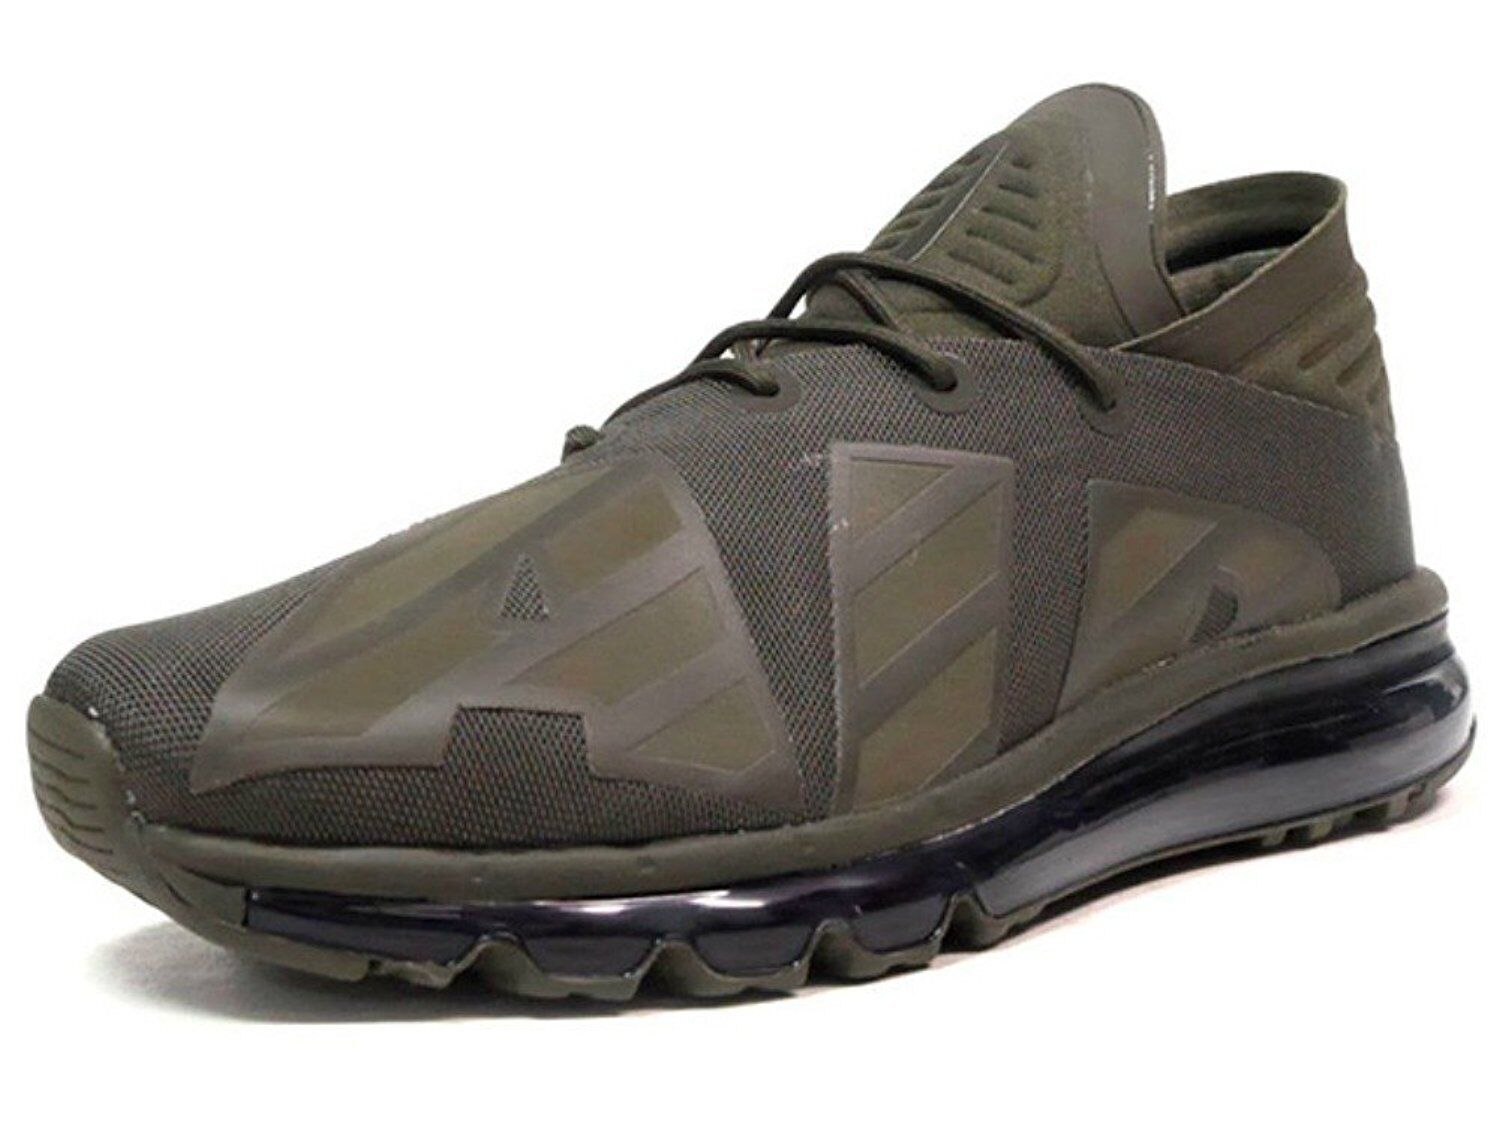 Nike Air Max Flair SE MEN'S Running Shoes AA4084 300  Retail 170 Size 8.5 New